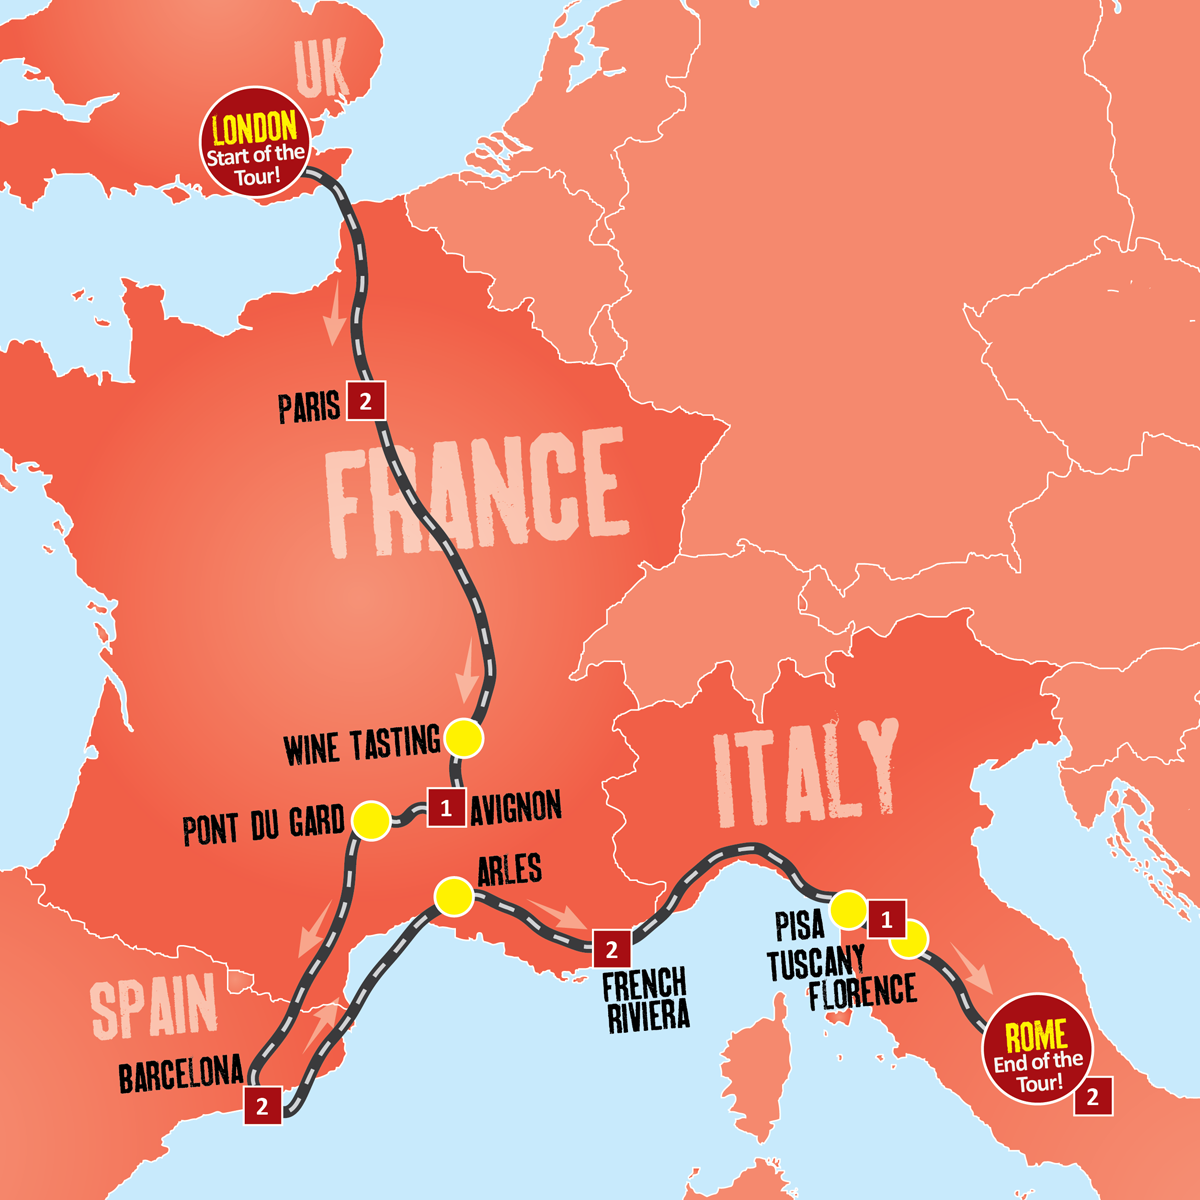 the london to rome tour from expat explore offers the best way to take in some